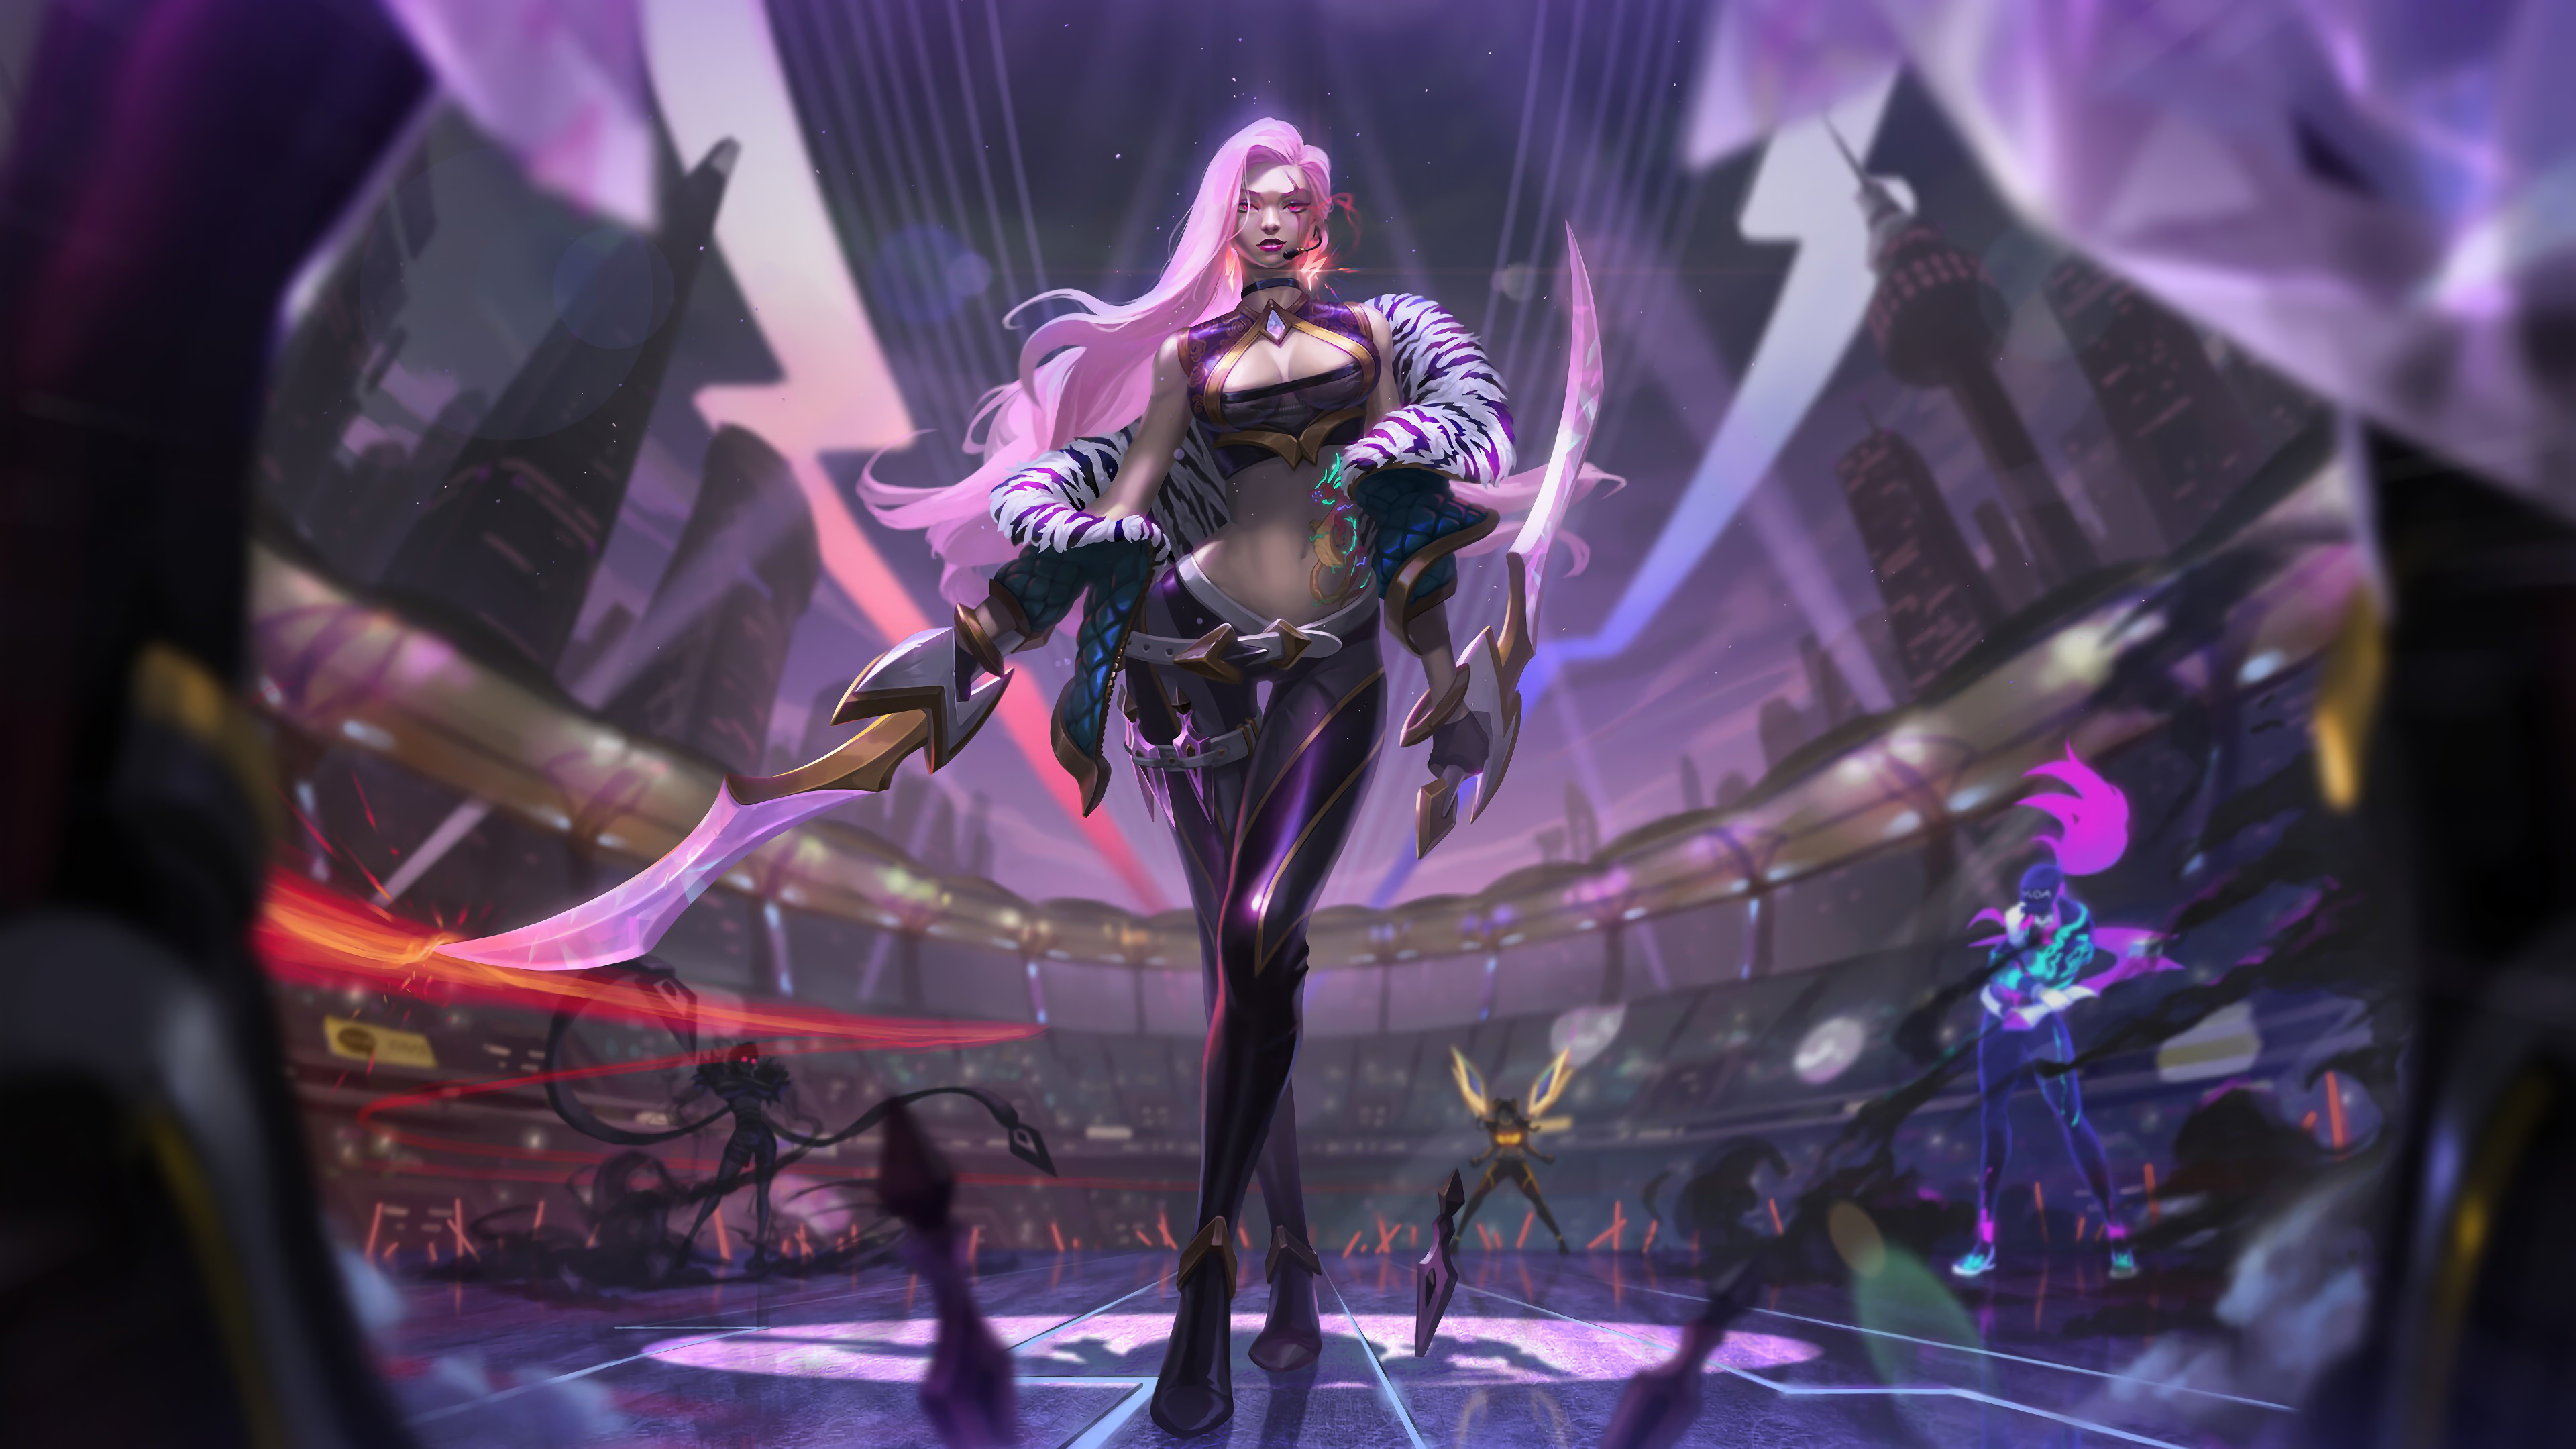 Kda Katarina League Of Legends 4k Hd Games 4k Wallpapers